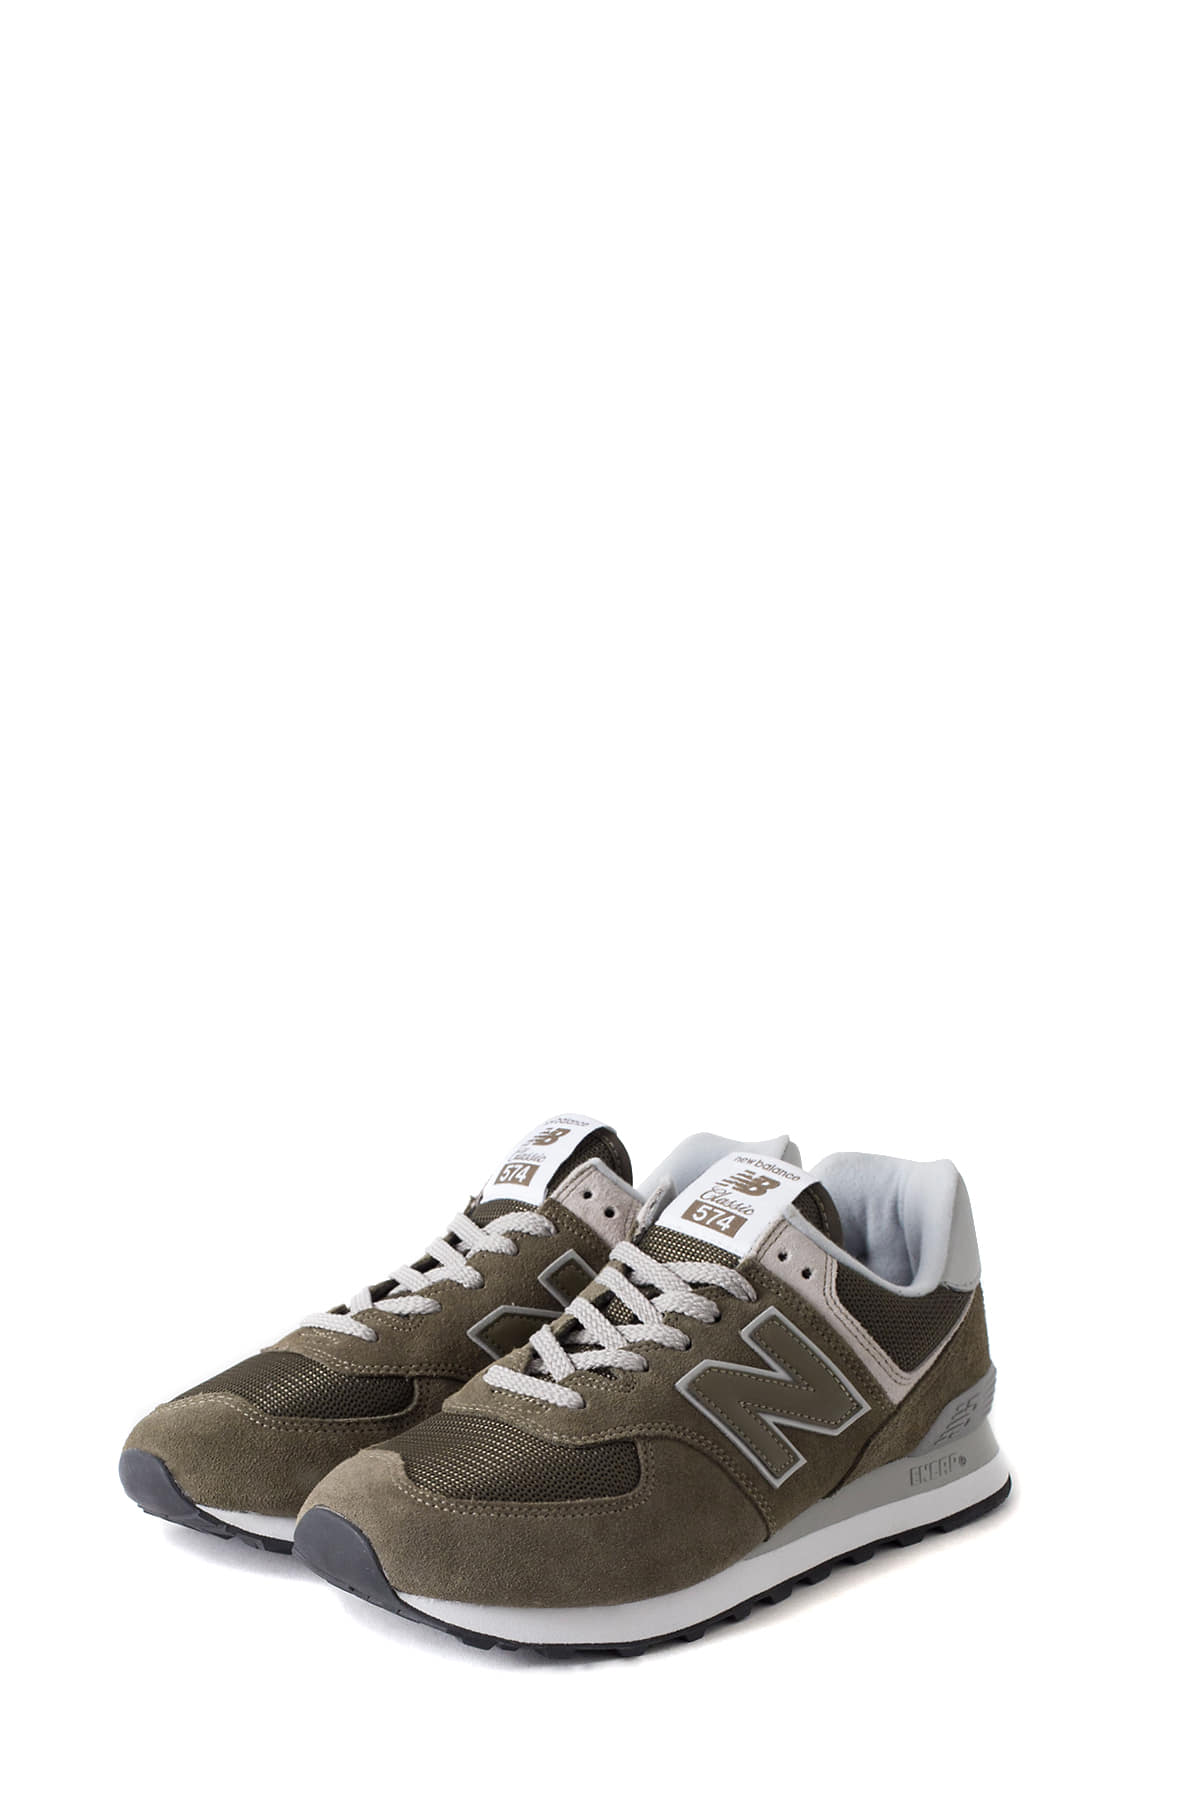 New Balance : ML574EGO (Khaki)